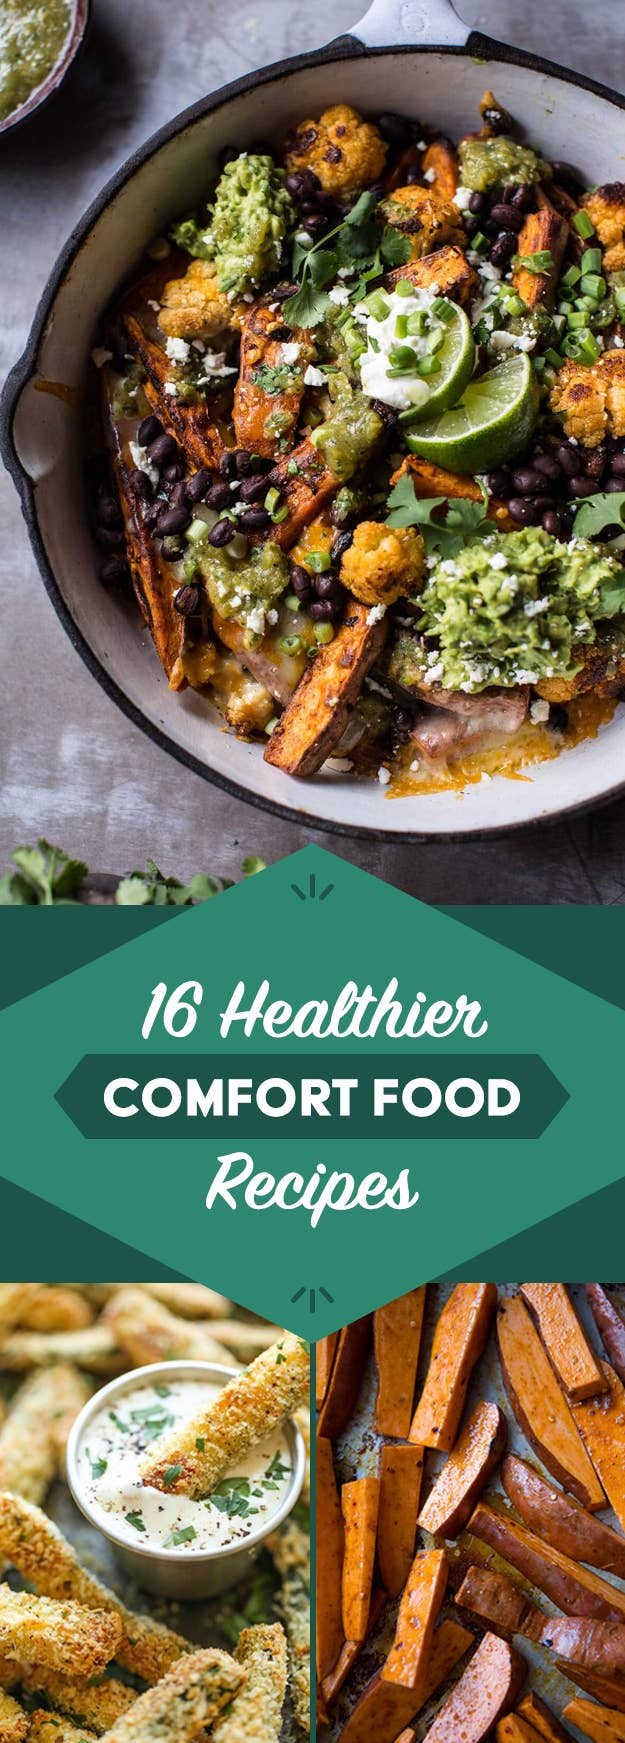 16 healthier comfort food recipes that dont sacrifice taste share on facebook share forumfinder Choice Image